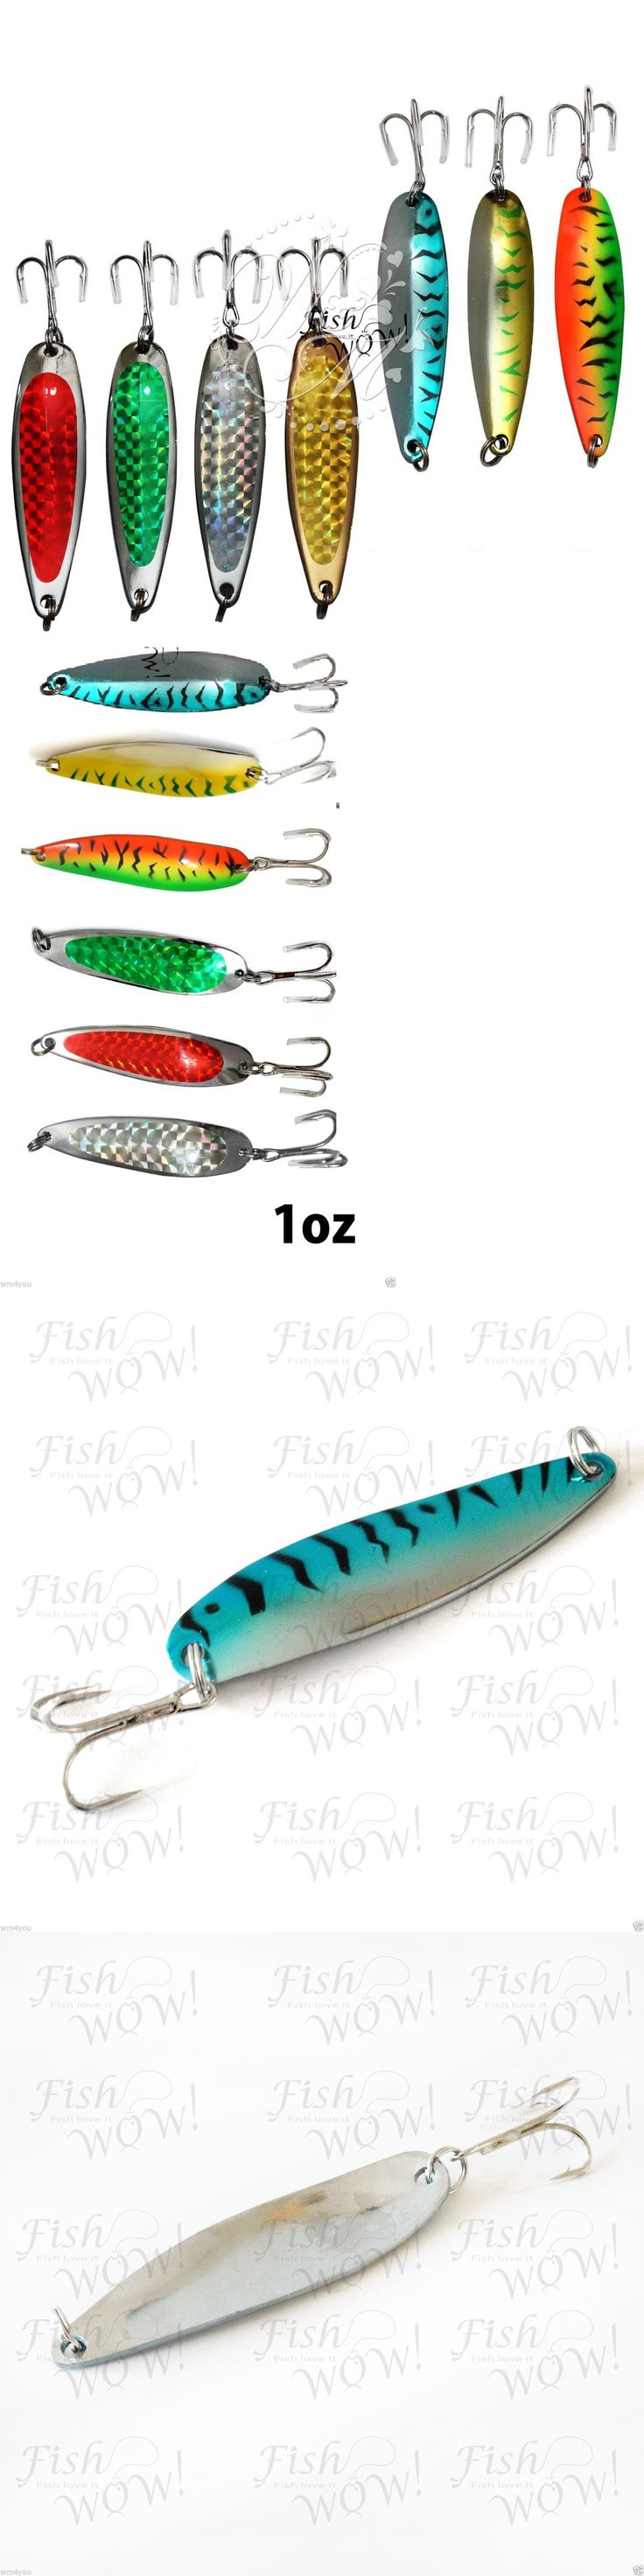 Spoons 31692: 1To20pc Random Colors 1Oz Fishing Spoons Kroc Fish Jigs Casting Lures Baits New -> BUY IT NOW ONLY: $37.94 on eBay!